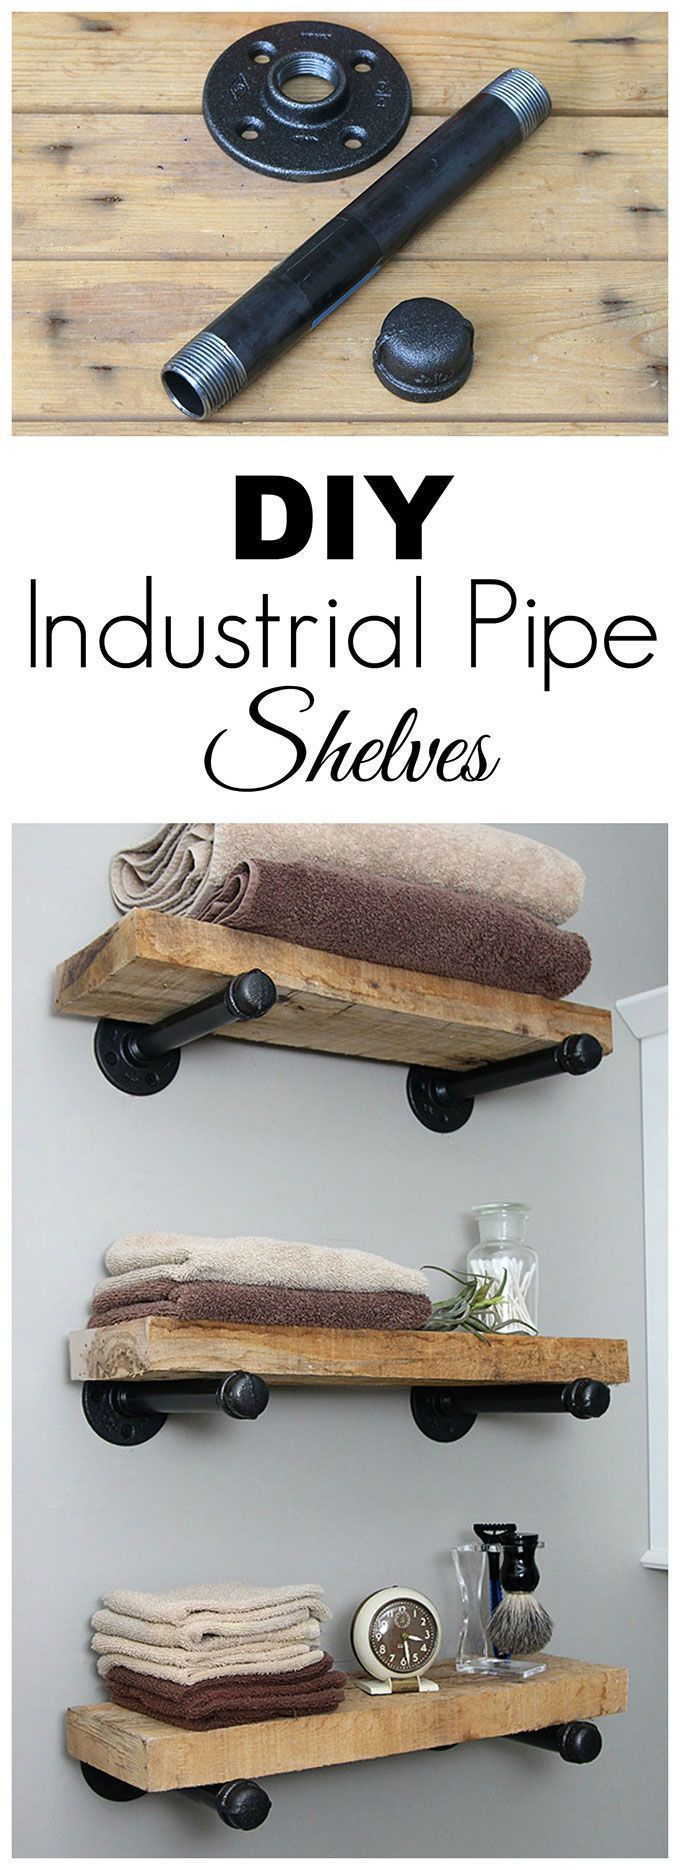 nice Super easy step by step tutorial for how to make DIY industrial pipe shelves at... by http://www.dana-home-decor.xyz/home-improvement/super-easy-step-by-step-tutorial-for-how-to-make-diy-industrial-pipe-shelves-at-2/